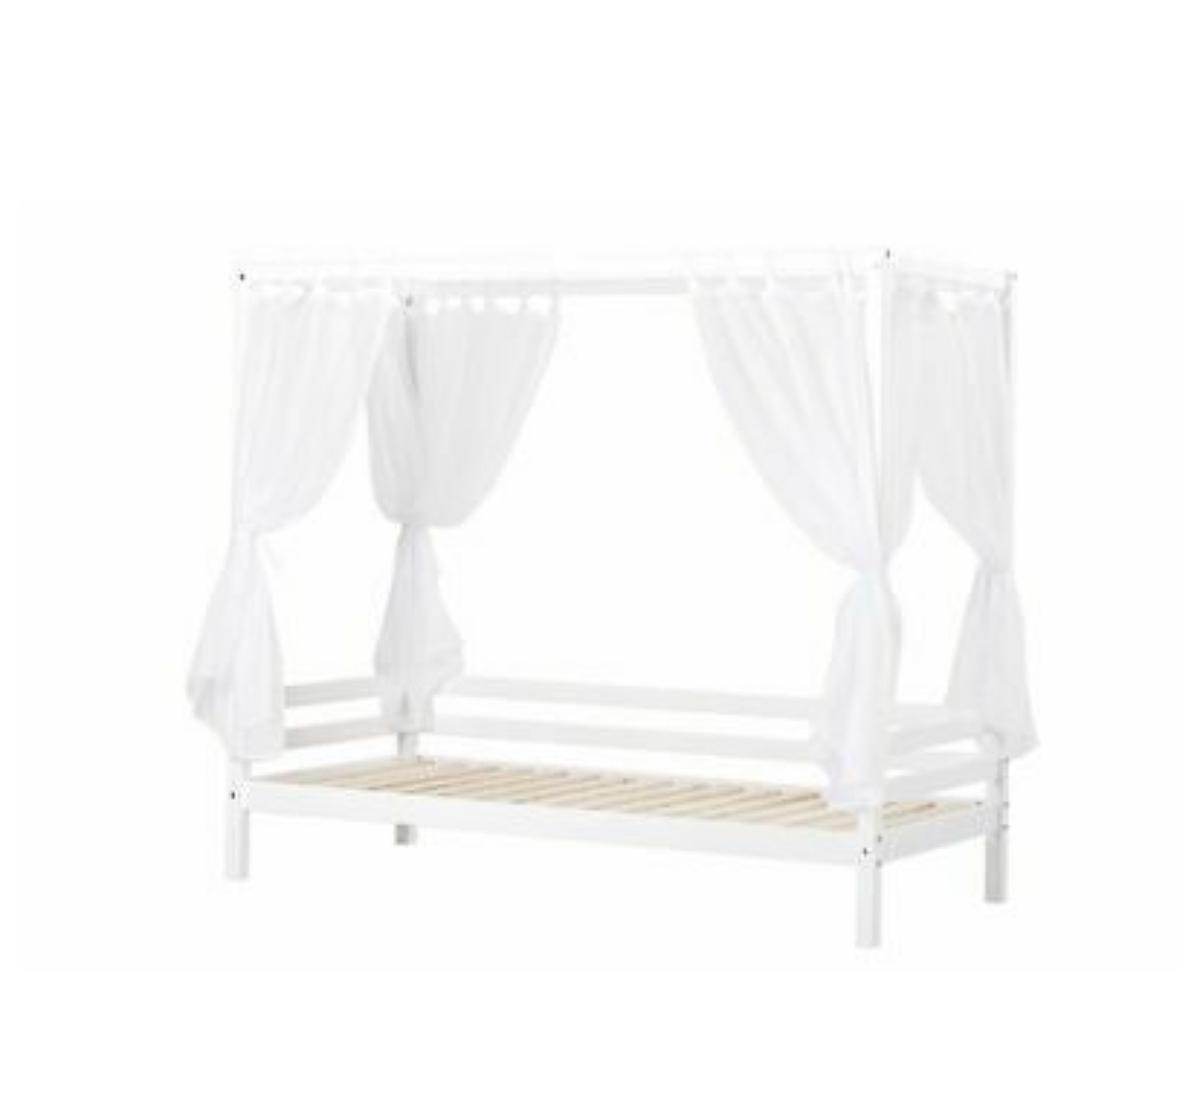 The White Company 4 Poster Single Bed In Sg13 Hertfordshire For 60 00 For Sale Shpock